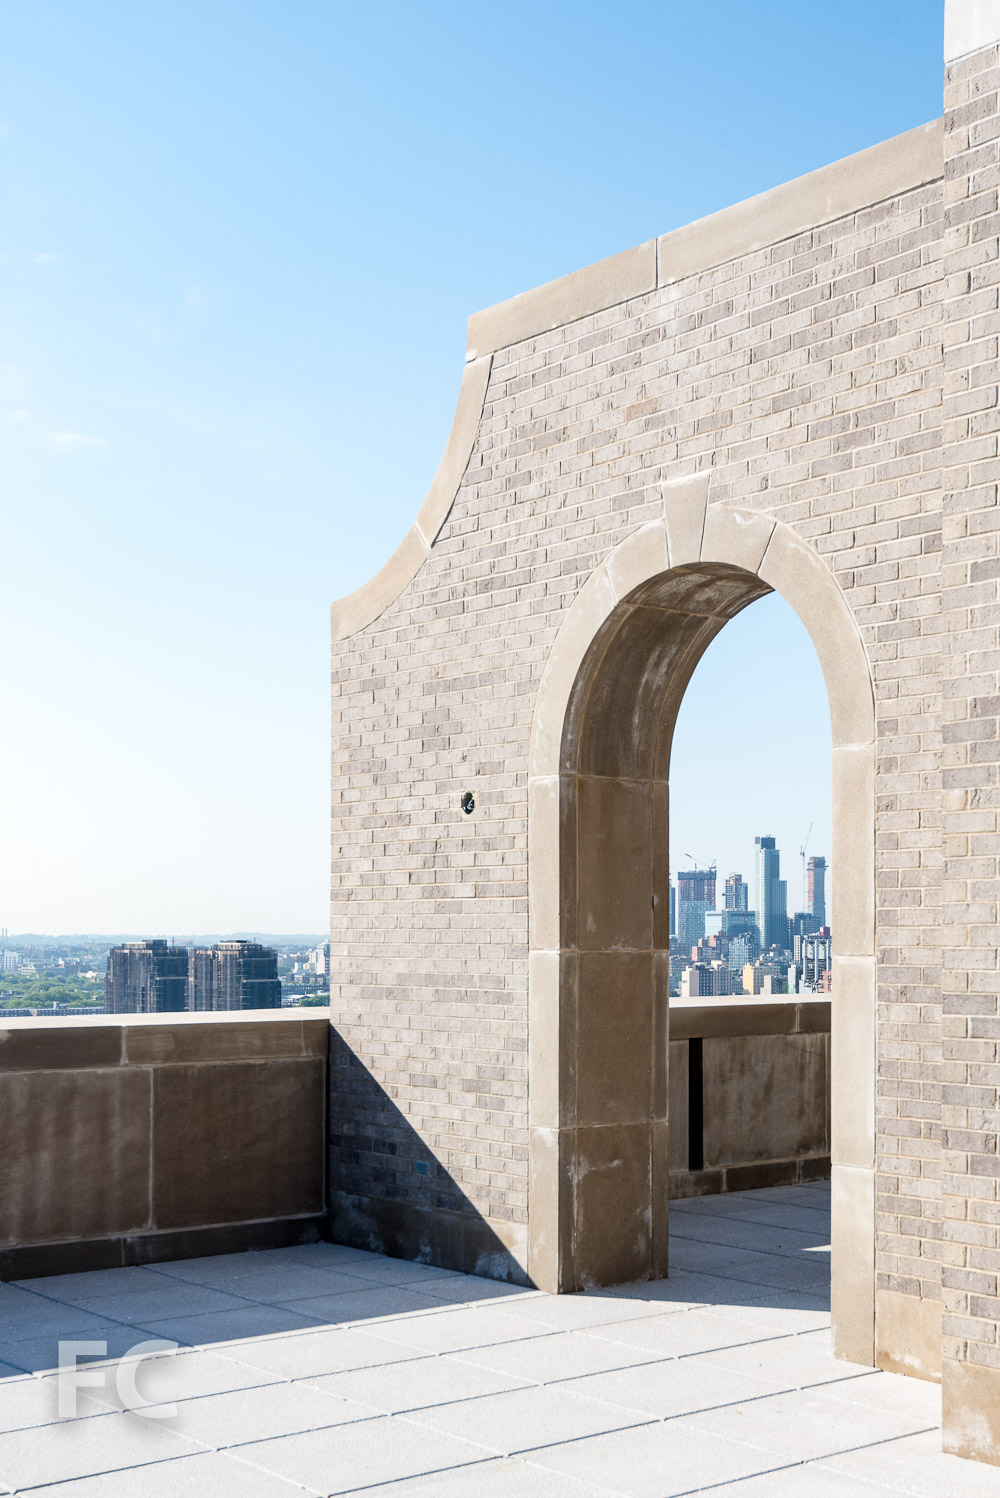 Long Island City framed by an arched opening on the rooftop terrace.